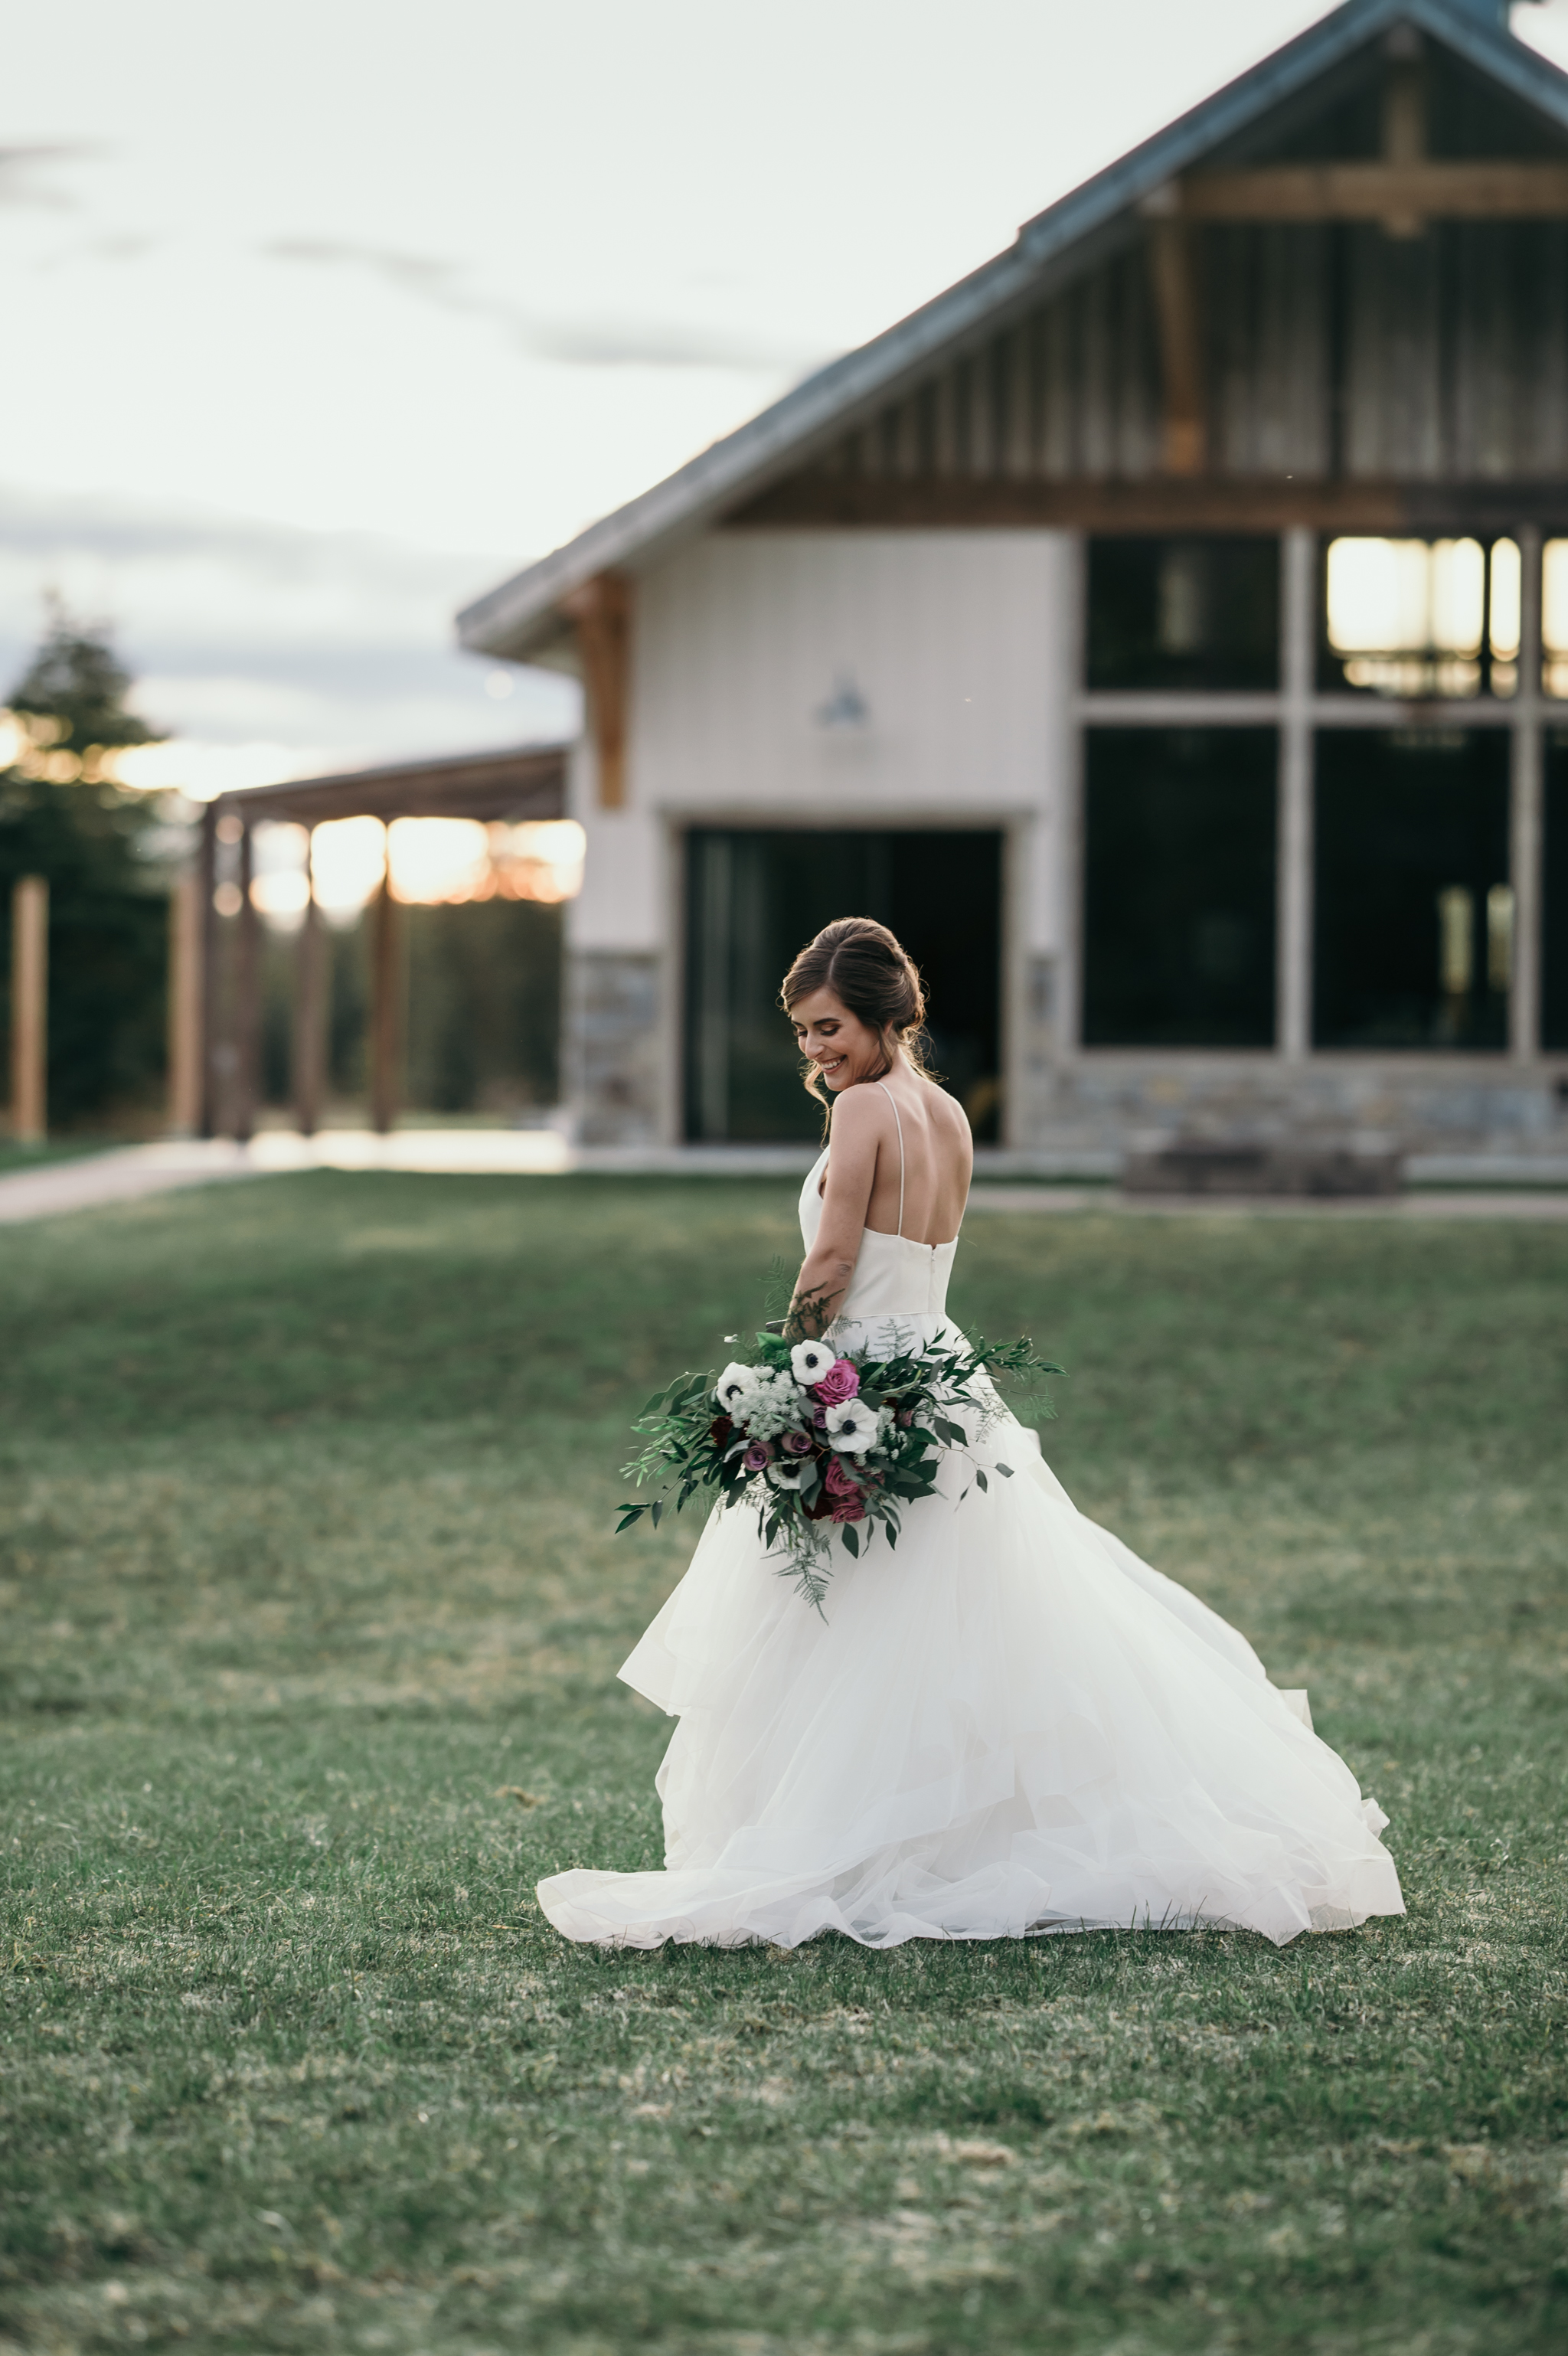 Jewel Tone Wedding Styled Shoot_Silver Knot_Montana Wedding Planner_Montana Wedding Photographer_Montana Wedding Videography_Honeybee Weddings-1503.jpg